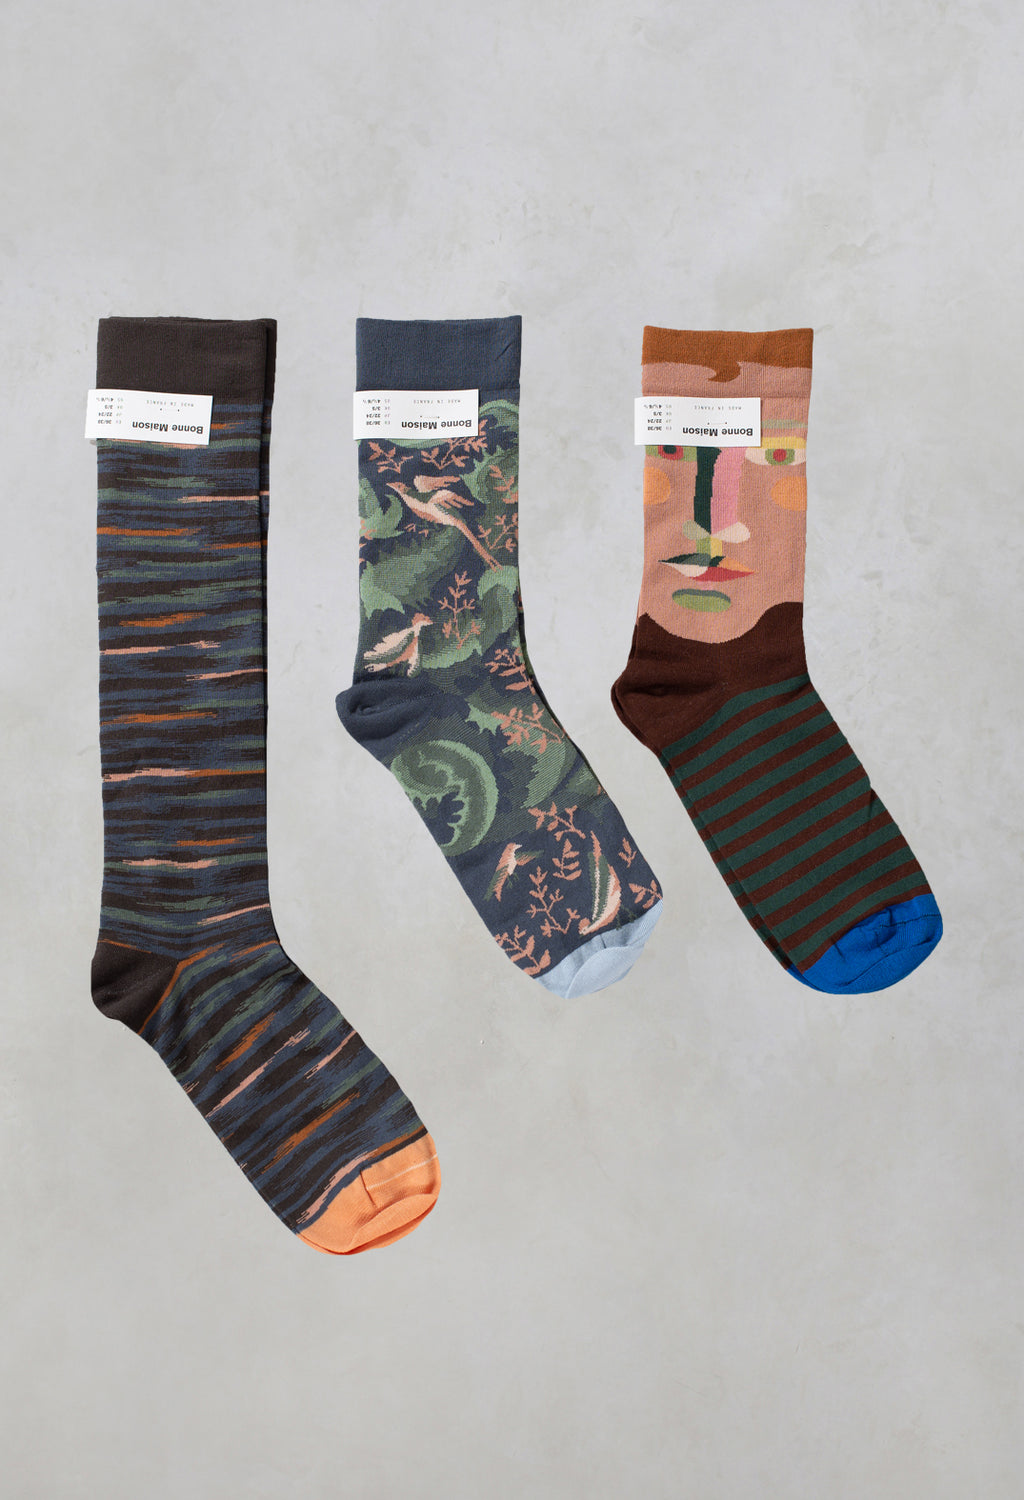 Socks in Multi Design Pack of 3